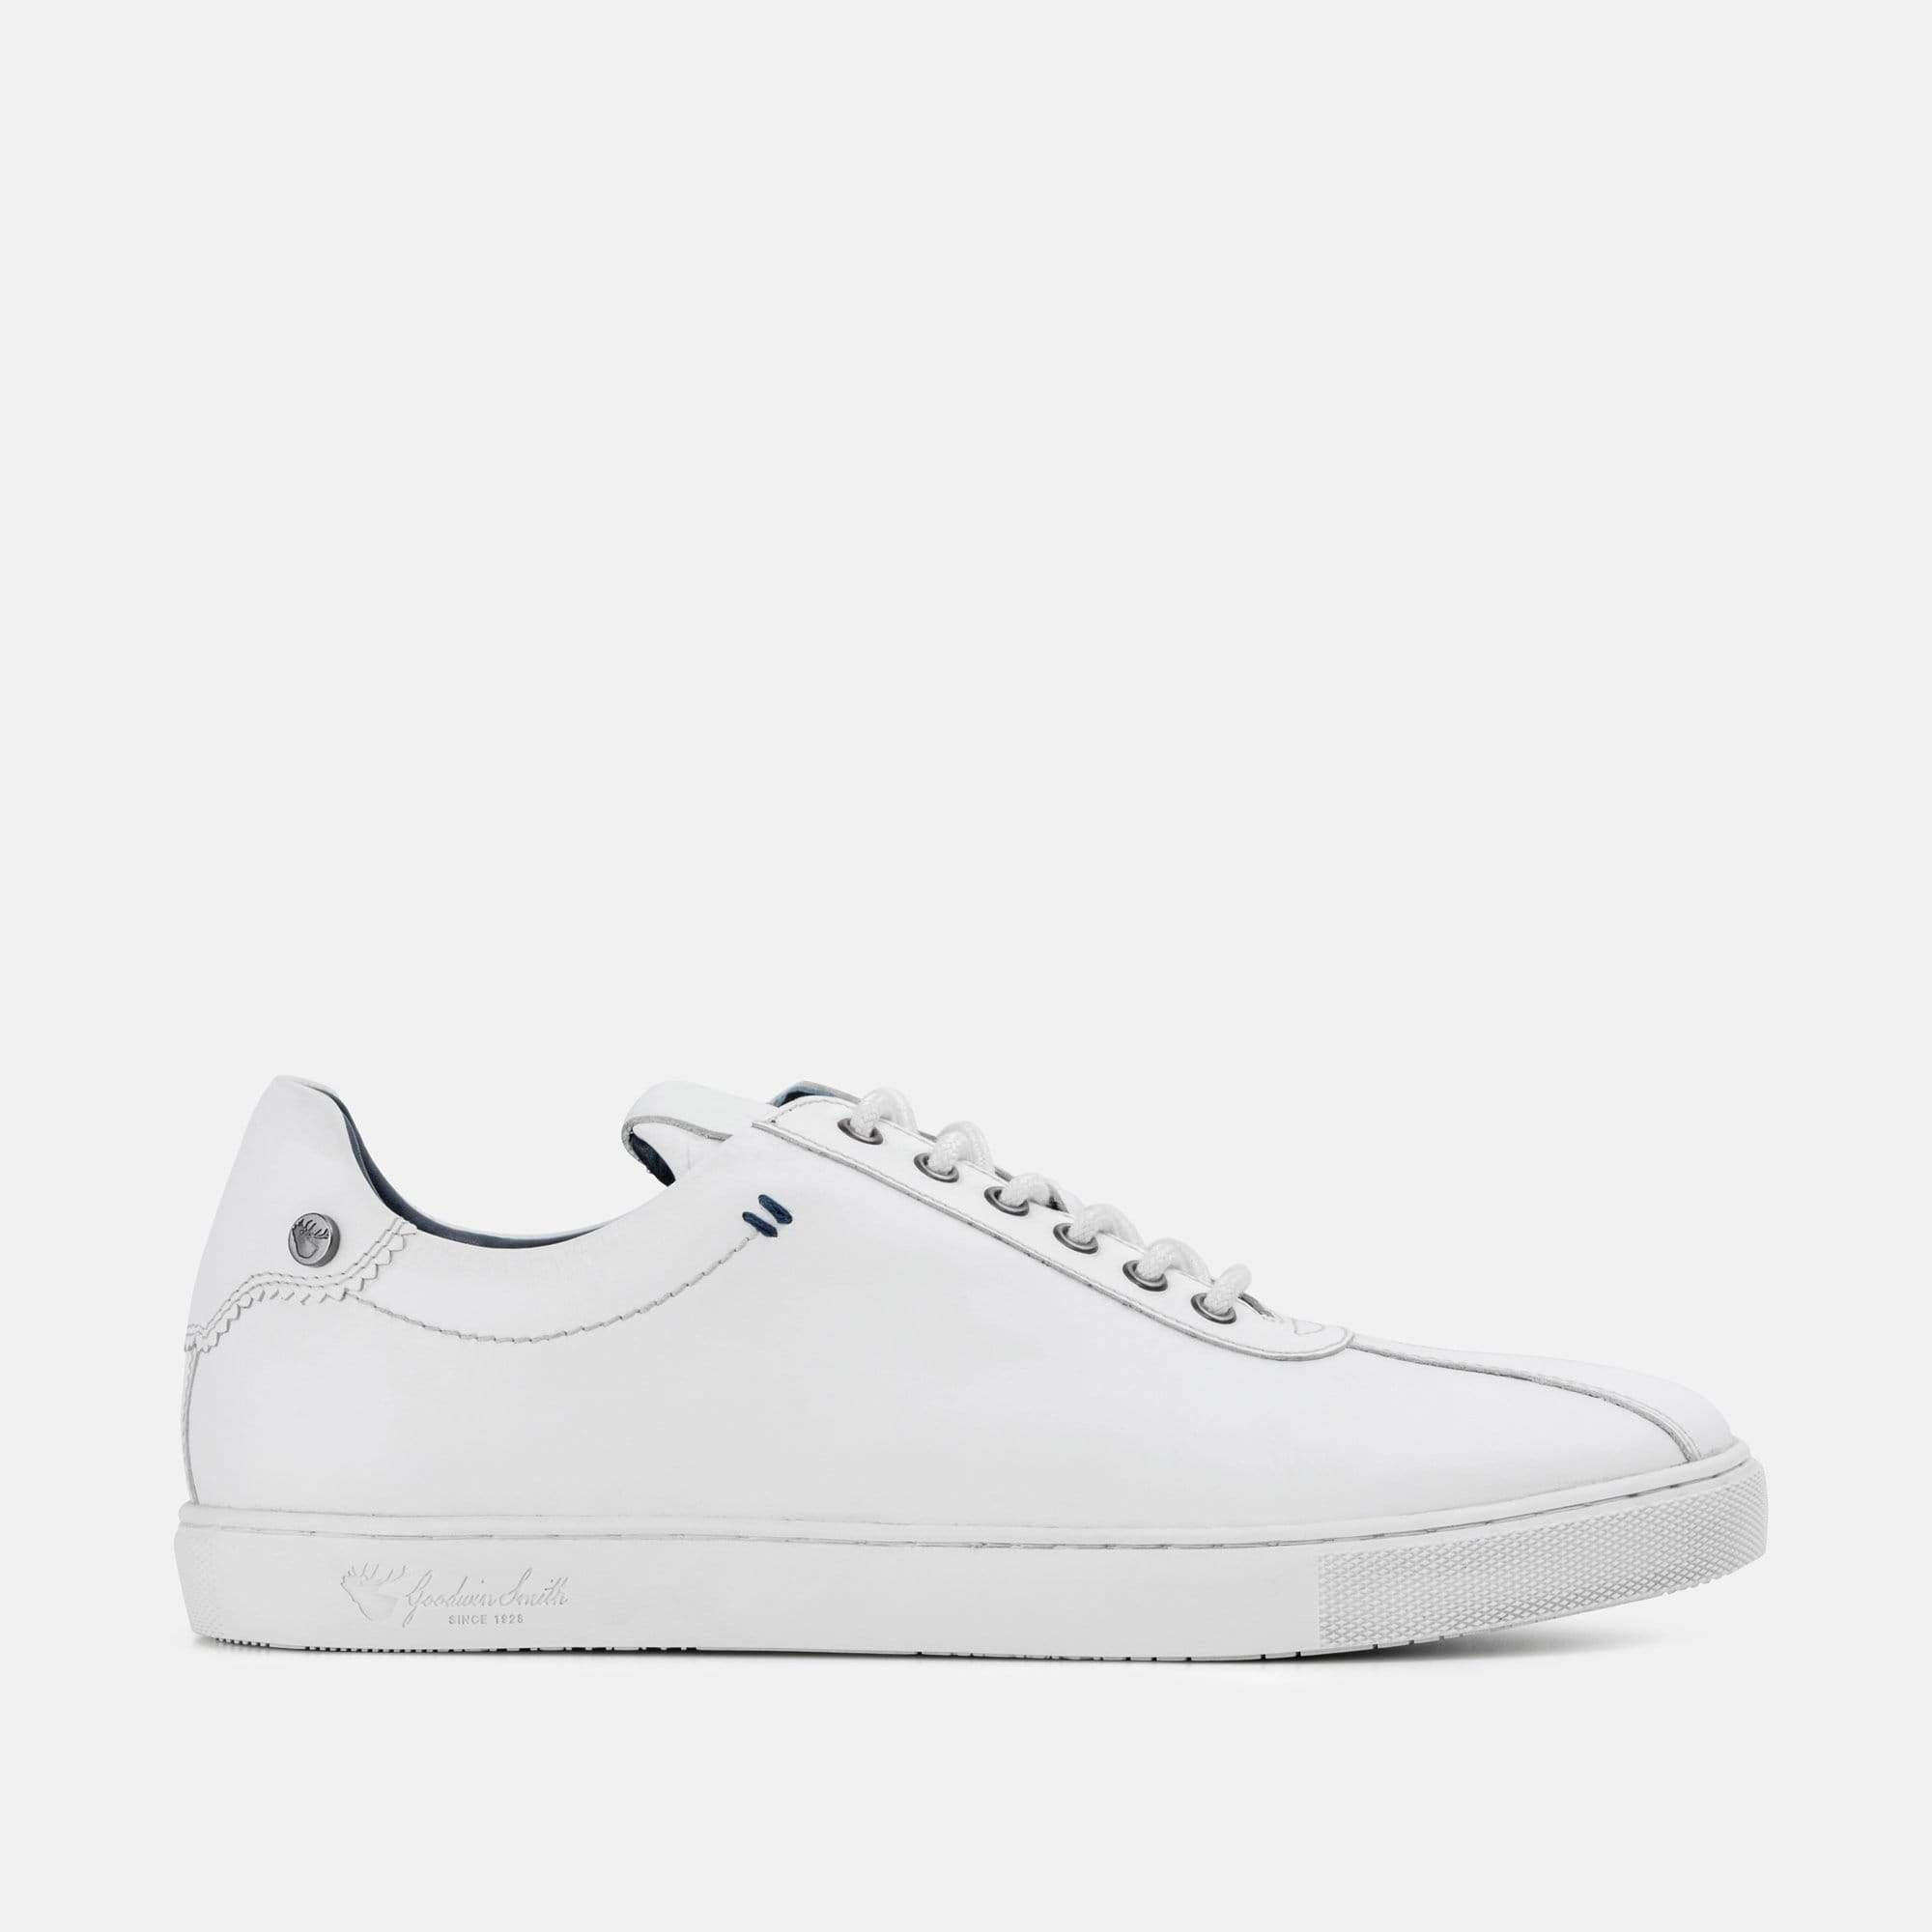 Goodwin Smith Footwear Lex White Smart Leather Plimsoll